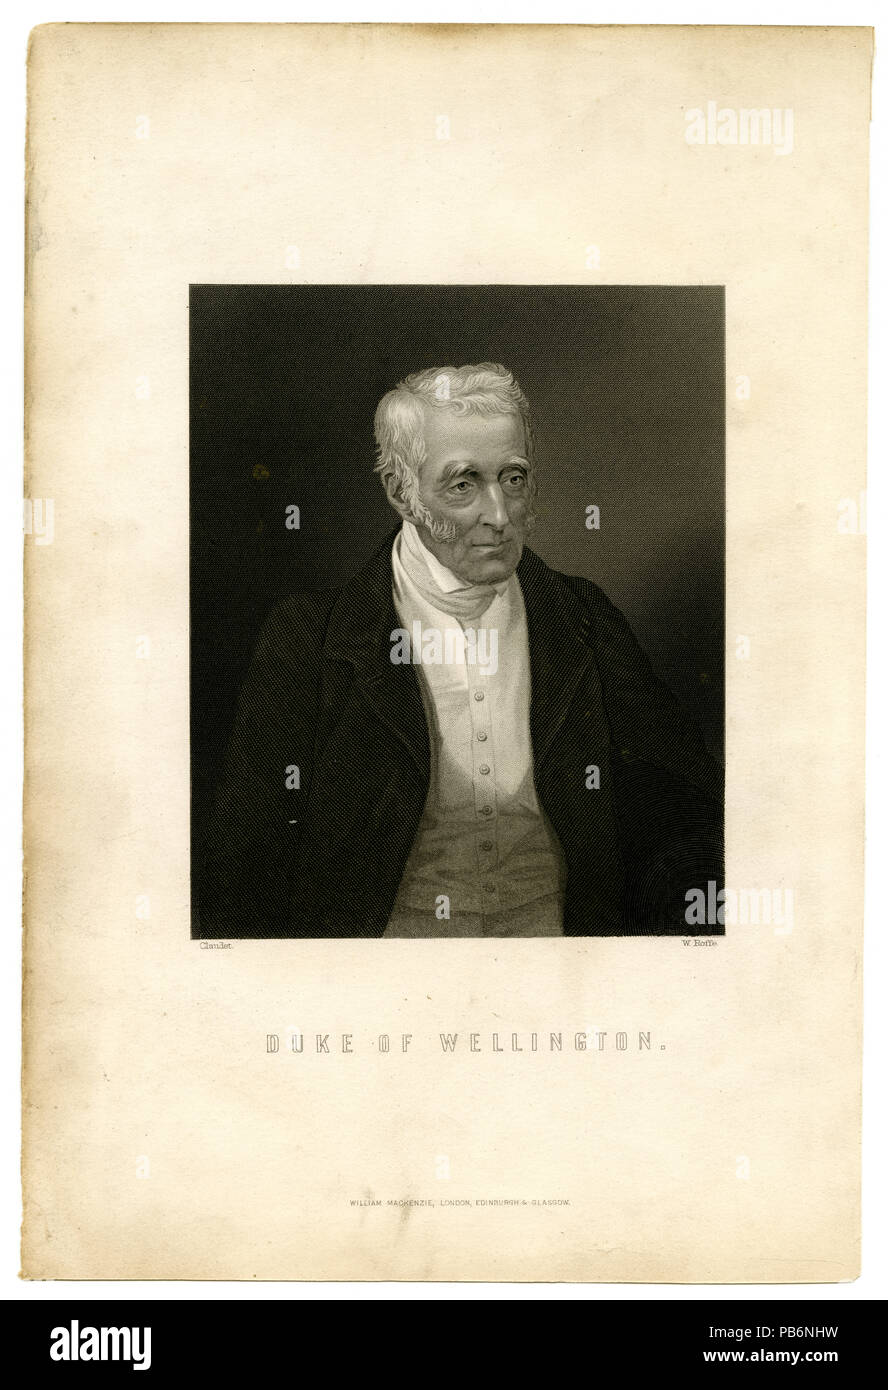 Duke of Wellington. - Stock Image